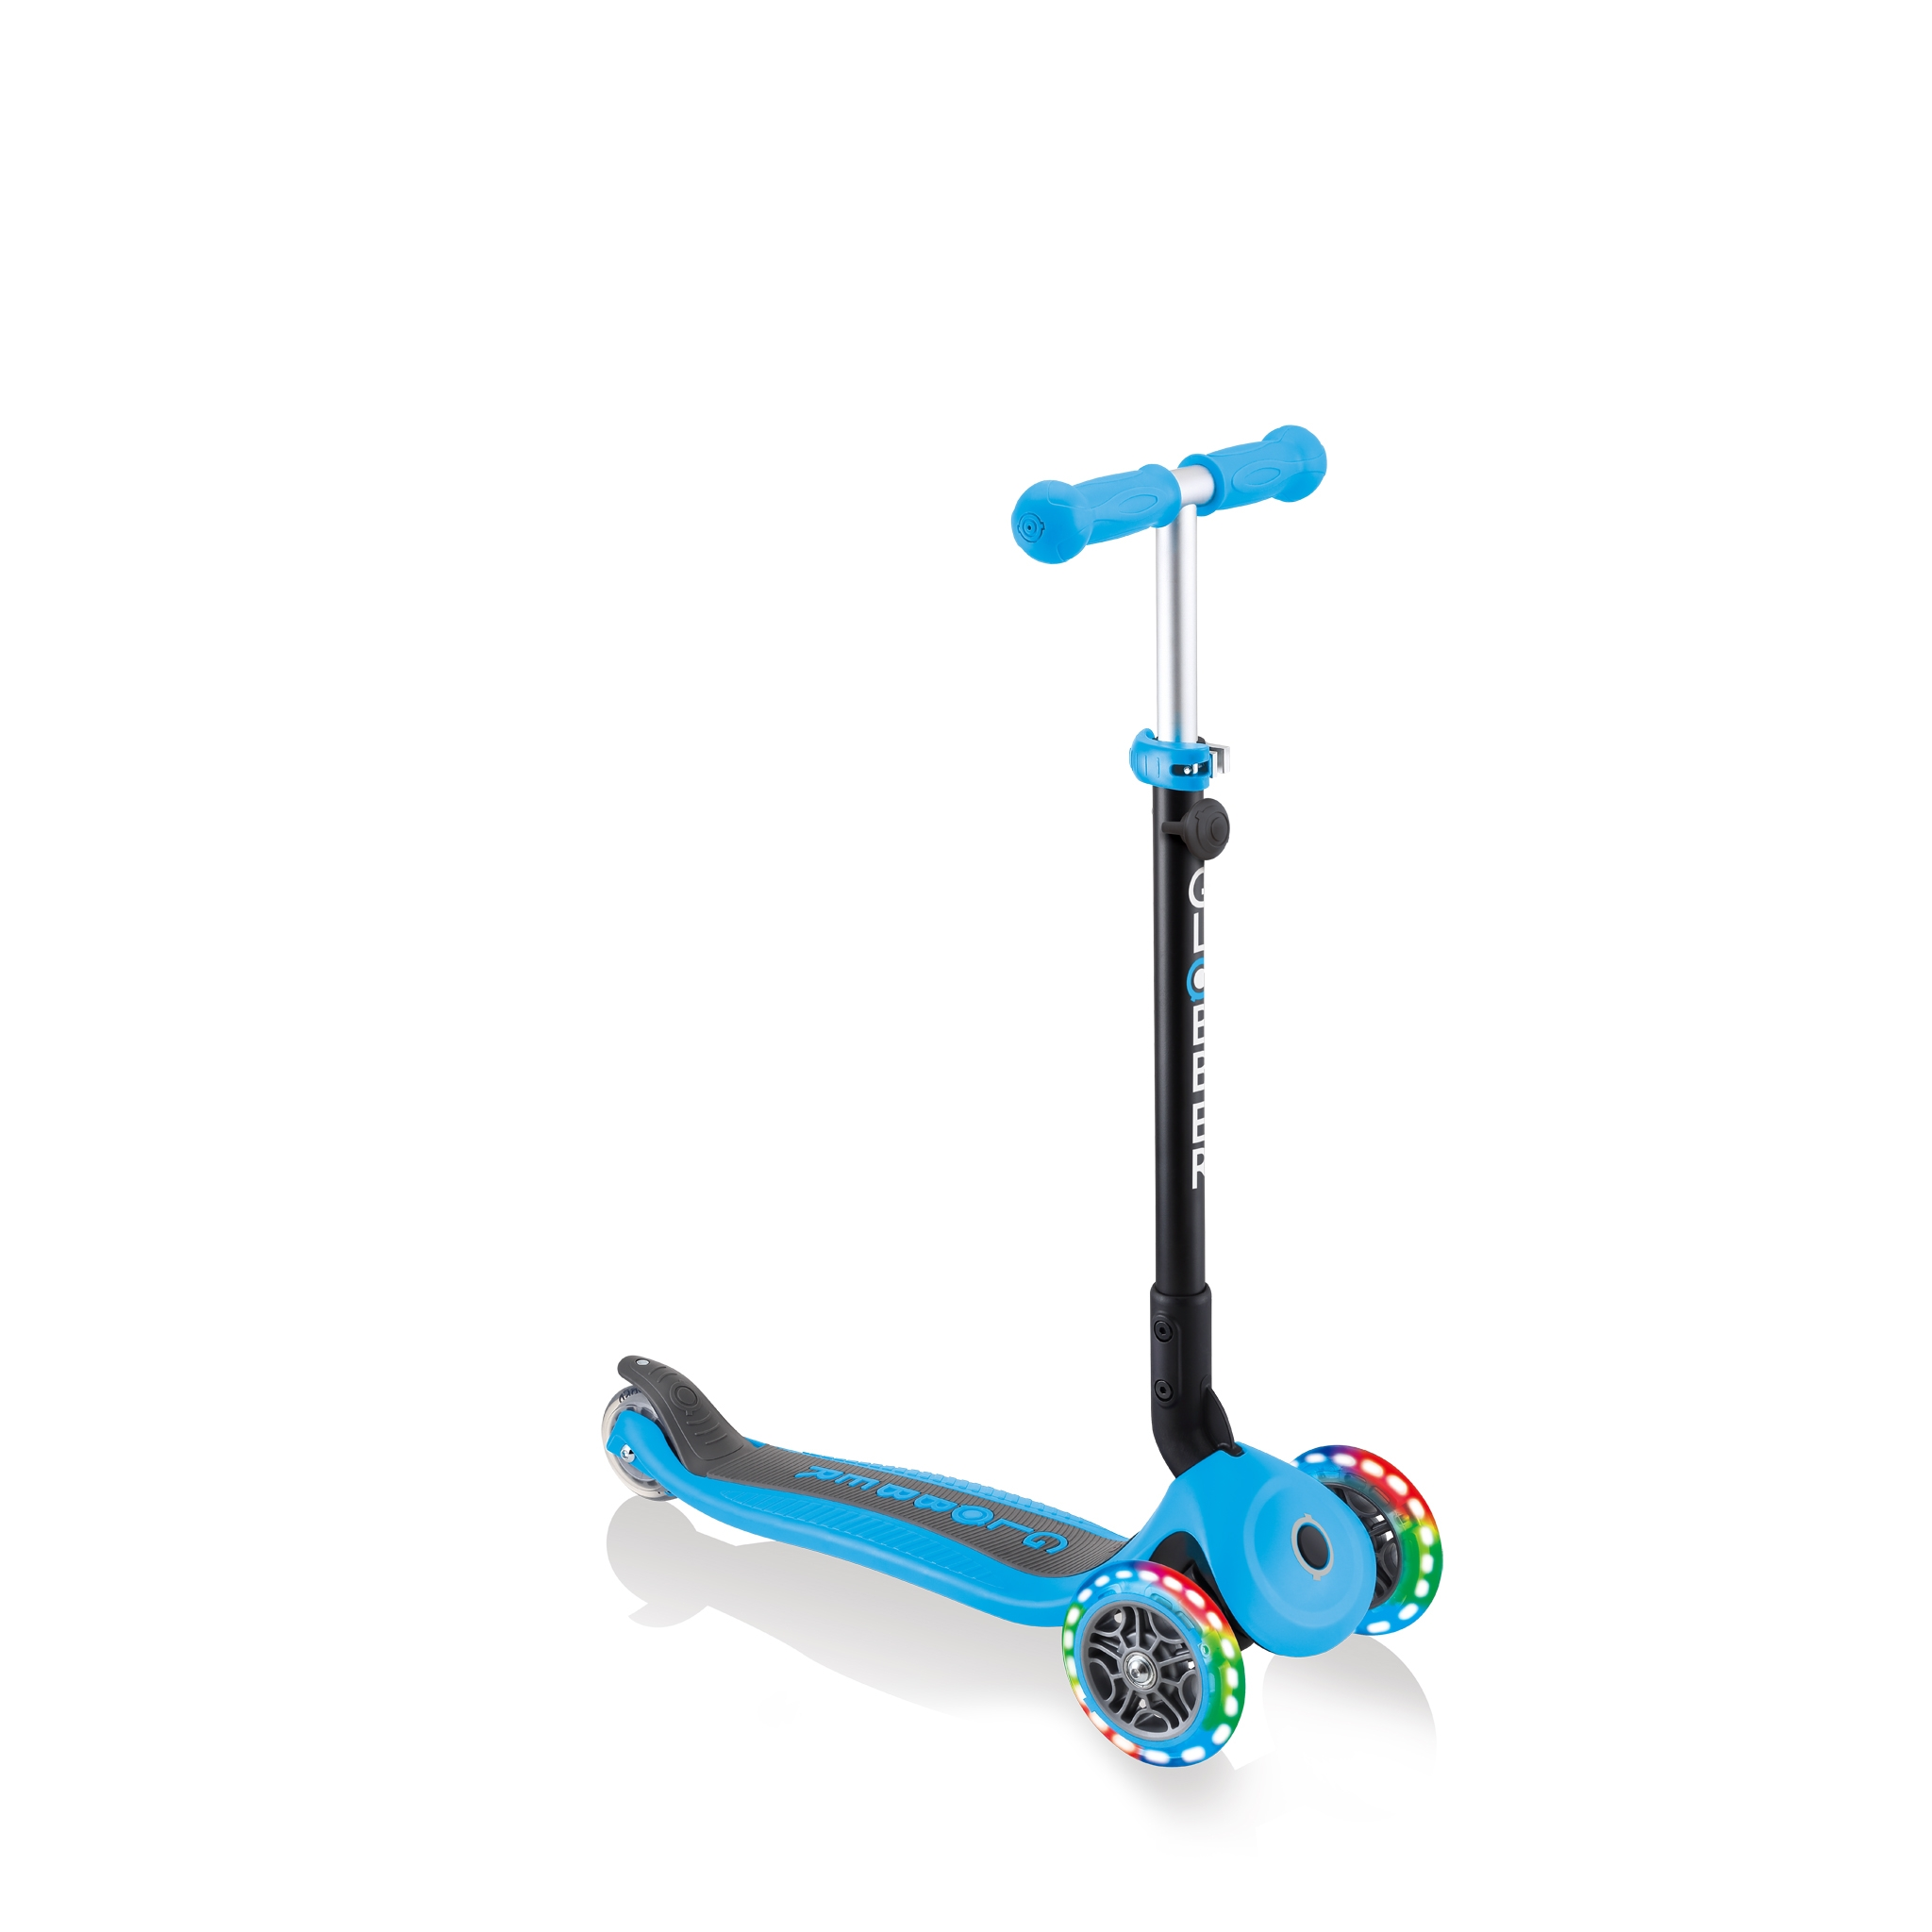 Globber-GO-UP-FOLDABLE-PLUS-LIGHTS-3-in-1-light-up-scooter-for-toddlers-scooter-mode 2